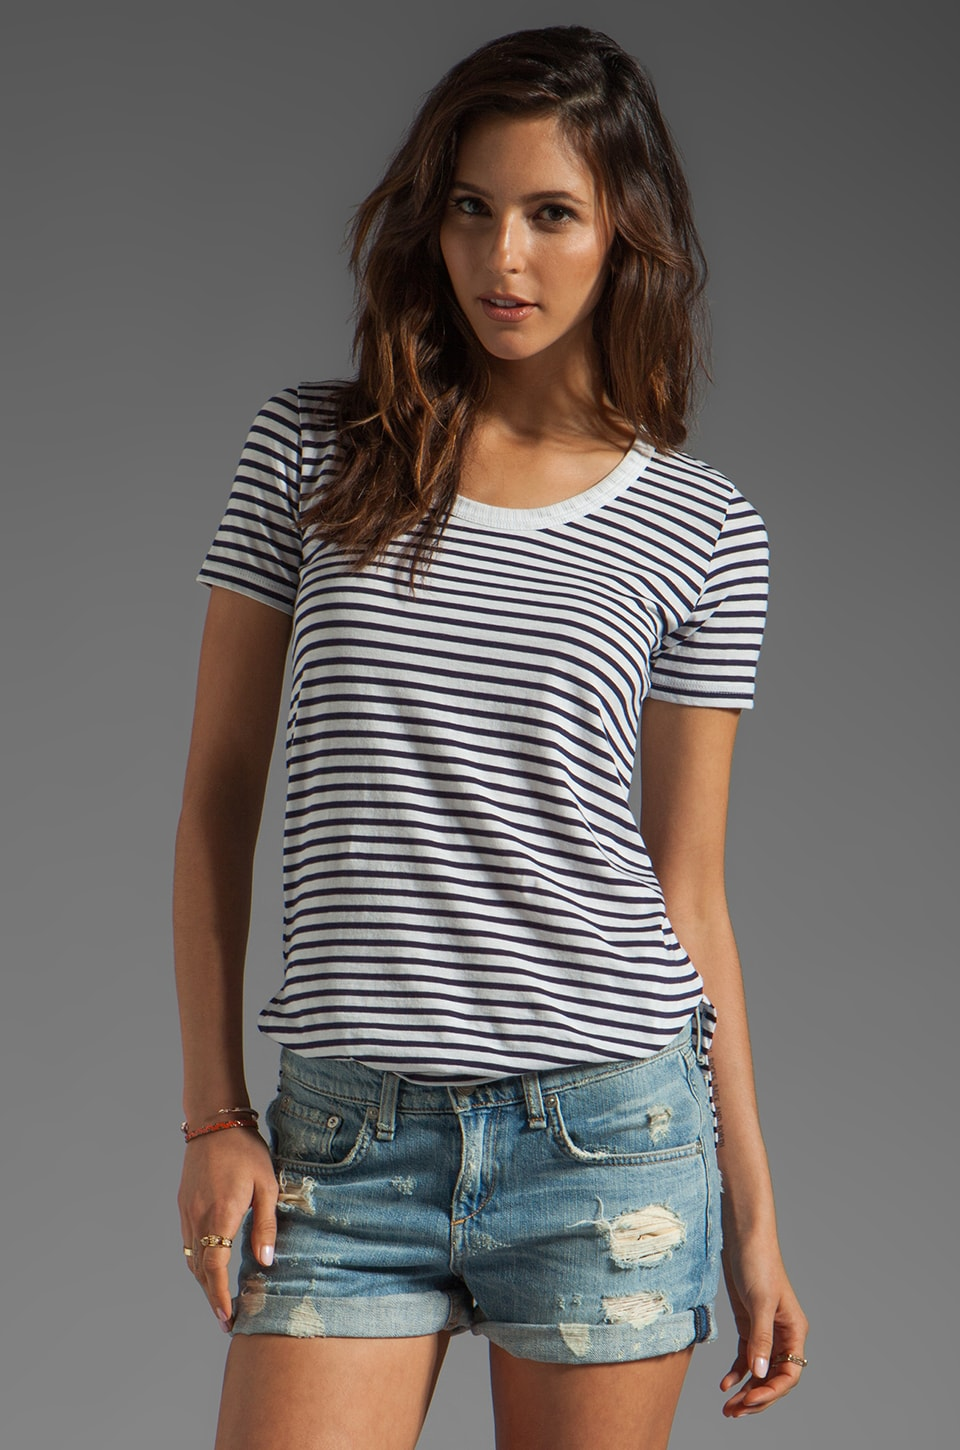 DemyLee Semi Sailor Stripe Top in White/Navy